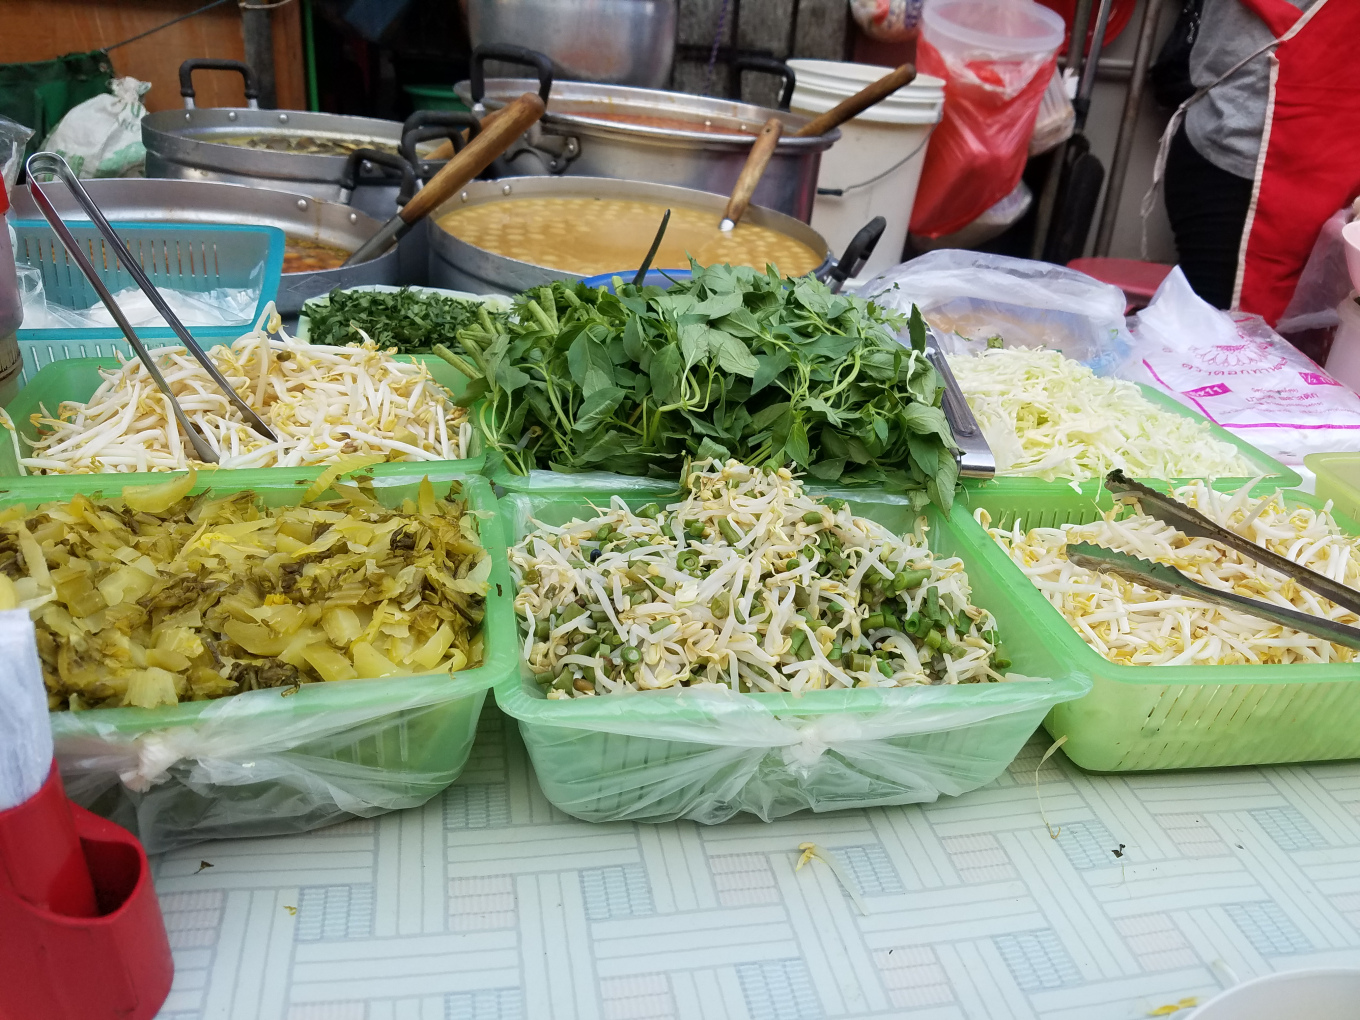 iwannabealady.com be thai spicy or be lame food lifestyle blogger travel women traveling thailand